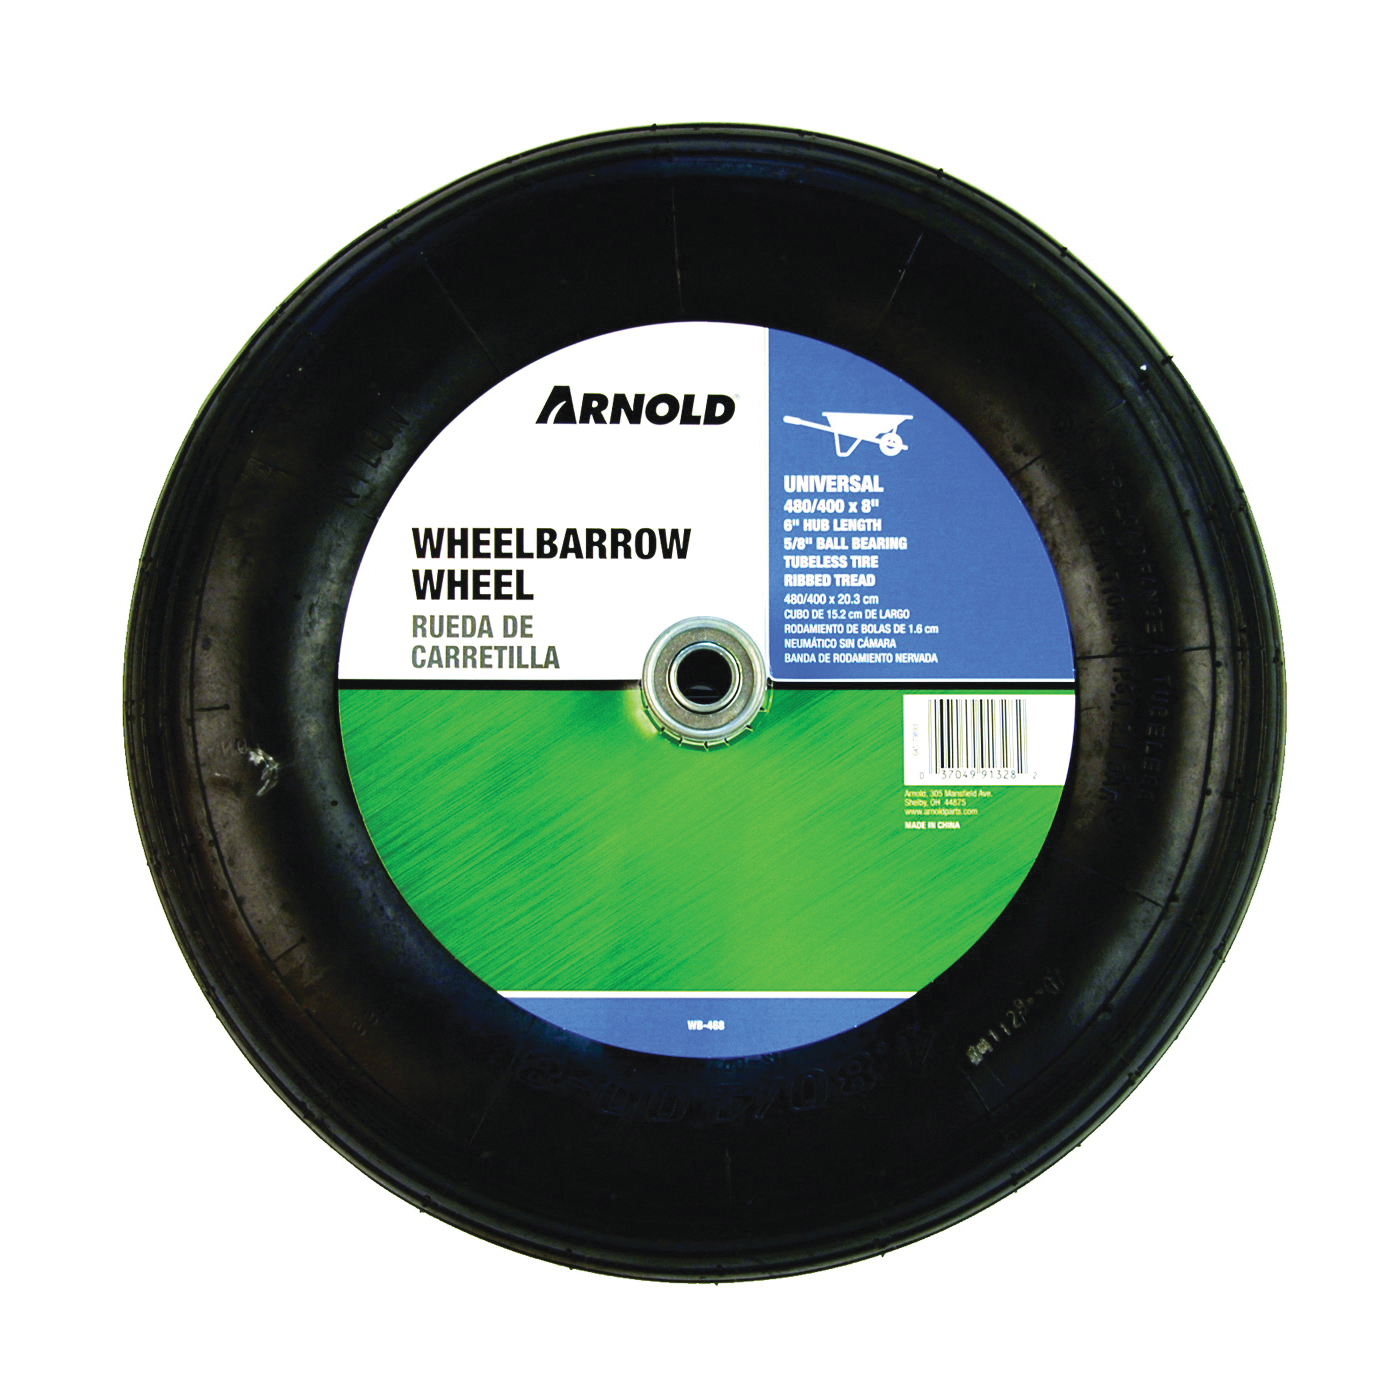 Picture of ARNOLD WB-468 Wheelbarrow Wheel, 4.8/4 x 8 in Tire, 15-1/2 in Dia Tire, Ribbed Tread, 6 in L Hub